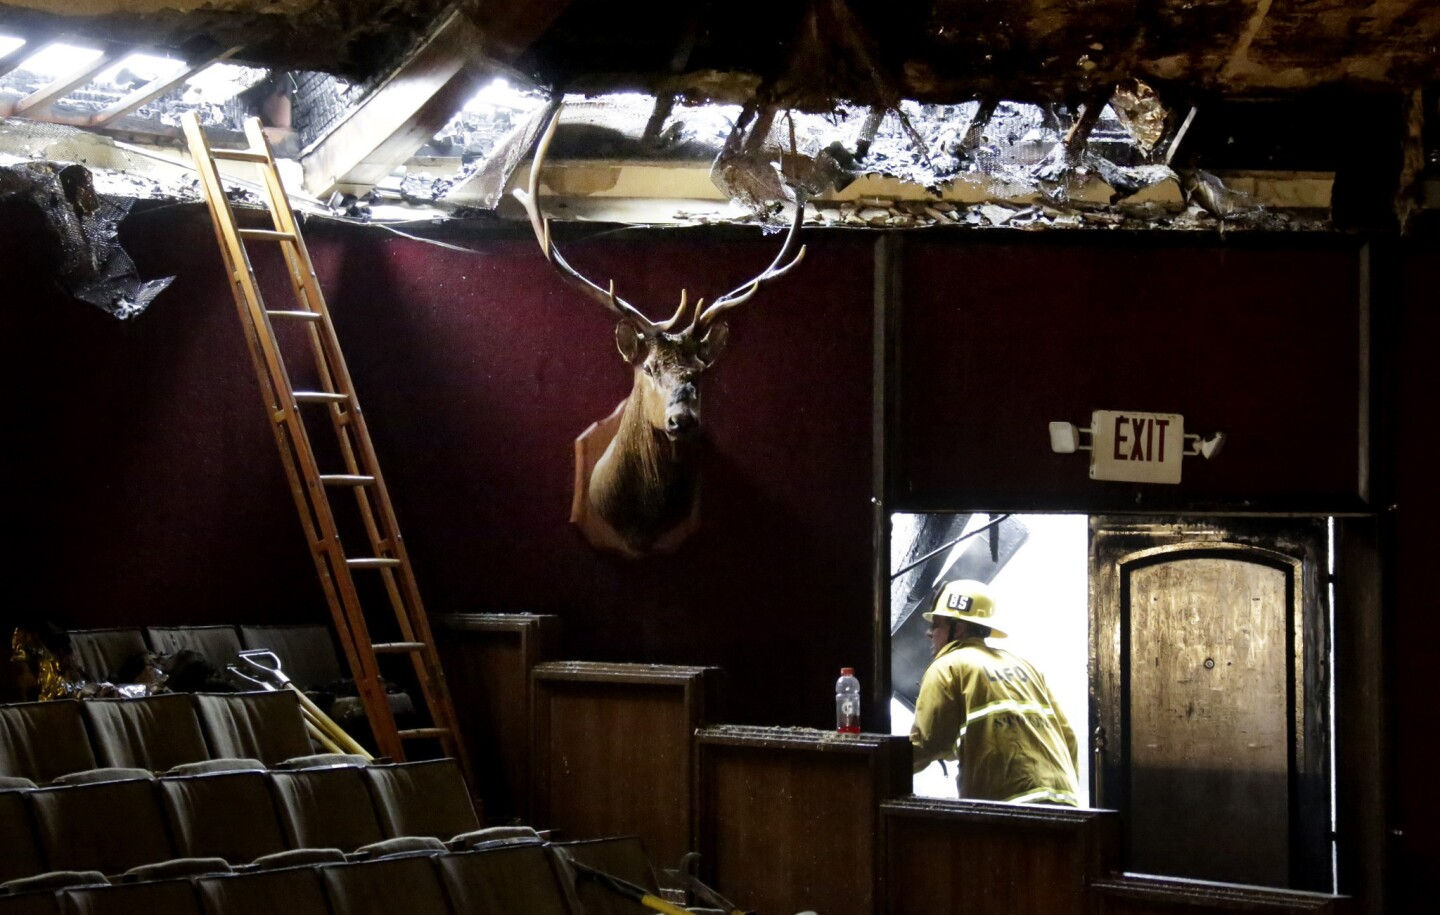 The Elks Lodge in San Pedro nearly burned to the ground early Tuesday morning after a fire started sometime in the middle of the night -- the second blaze on the property this week.